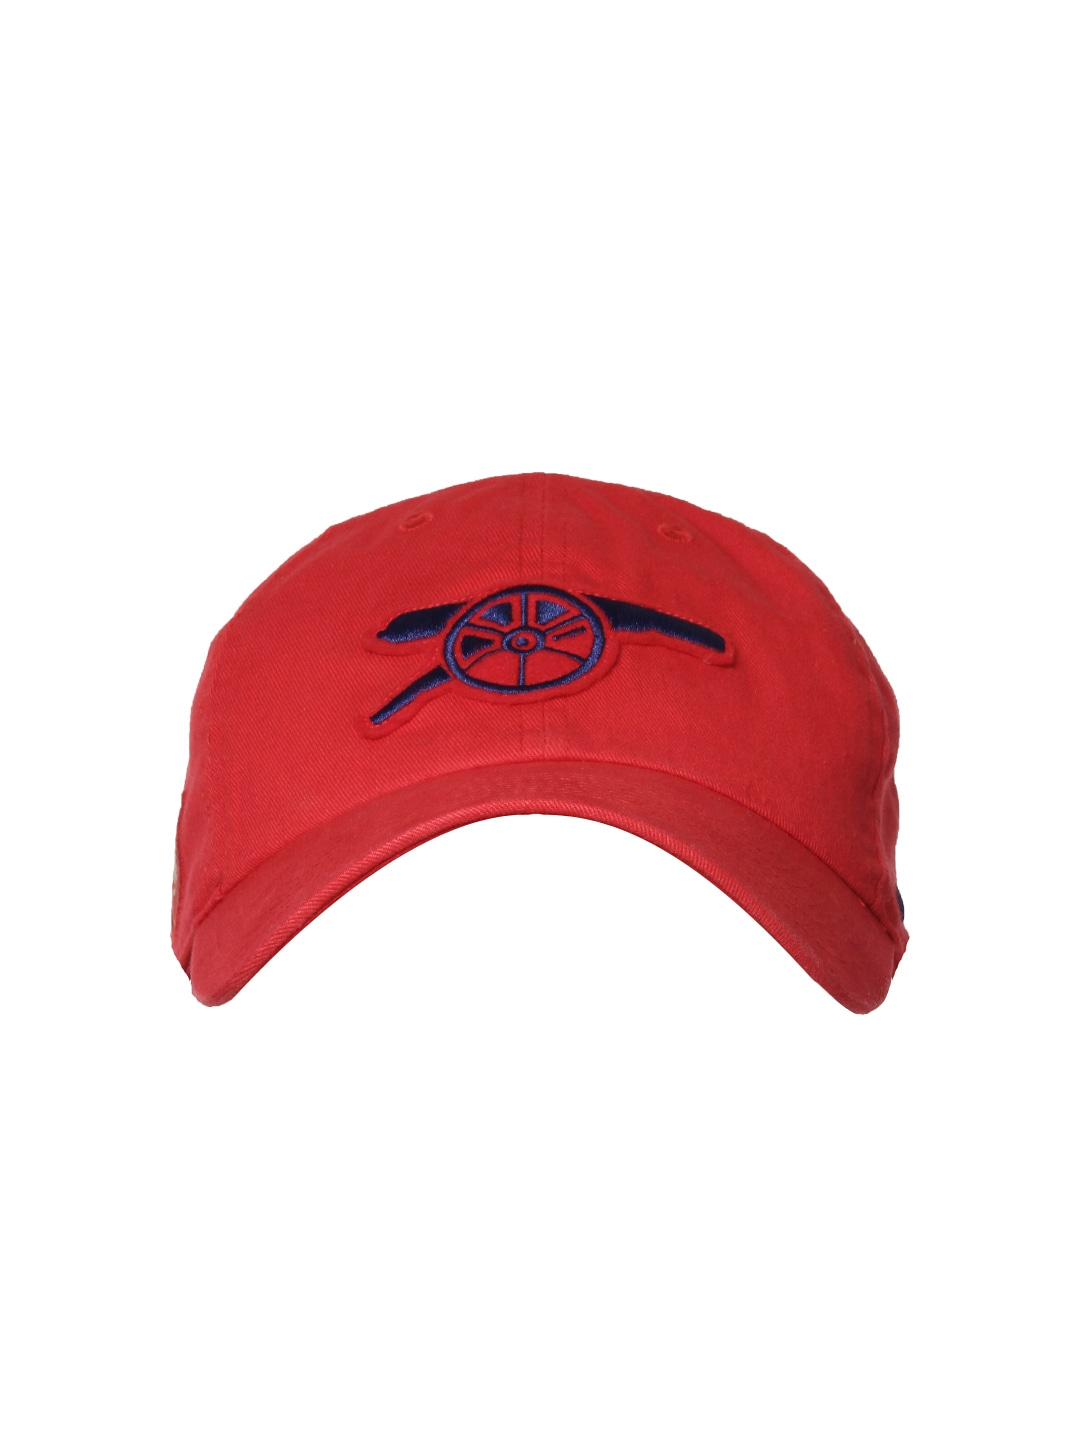 17955f03078 ... ireland nike 480567 657 unisex red arsenal cap price in india 4d8d6  2371d